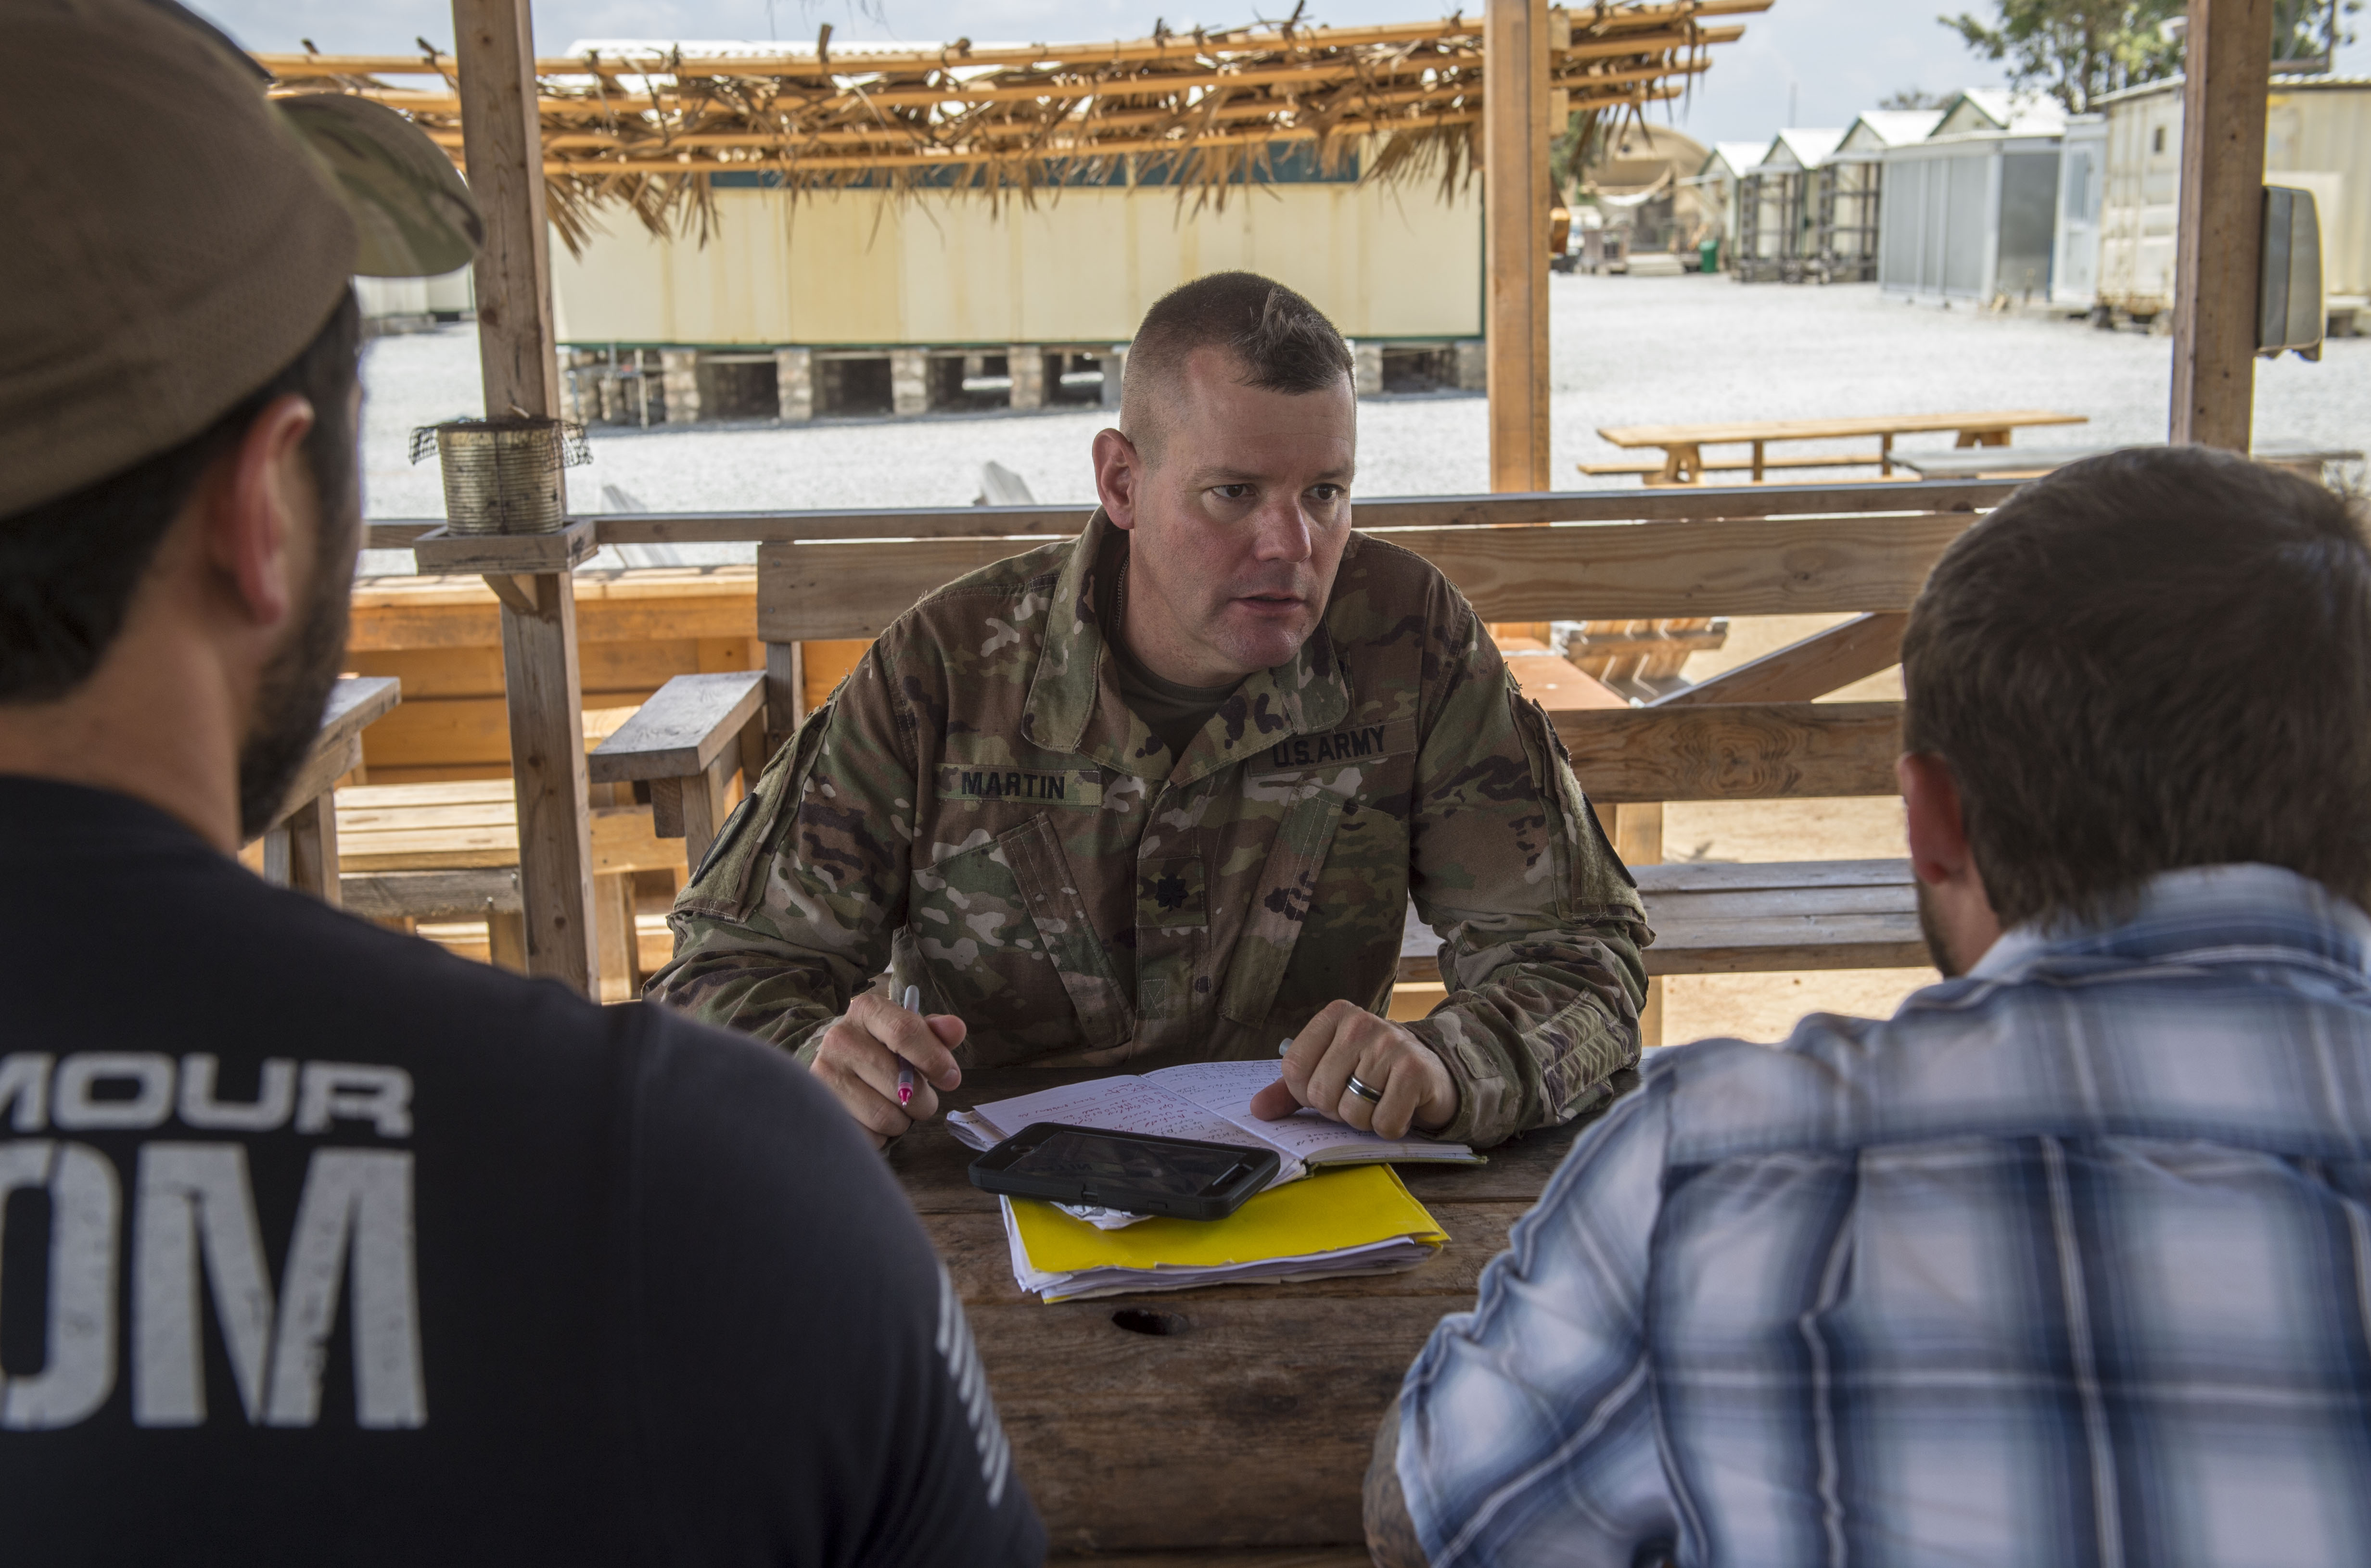 U.S. Army Lt. Col. Todd Martin, left, safety officer assigned to the Combined Joint Task Force - Horn of Africa (CJTF-HOA) Safety directorate, speaks with CJTF-HOA personnel assigned to Camp Simba in Manda Bay, Kenya, about safety concerns during a battlefield circulation site visit Feb. 24, 2018. The CJTF-HOA Safety and Inspector General directorates provide support to the service members, Department of Defense civilians, and local national and third-country national contractors who work on the camp. Though many of the members at the camp don't fall under CJTF-HOA, many of the concerns that affect the CJTF-HOA personnel also affect them and vice versa. (U.S. Air Force photo by Staff Sgt. Timothy Moore)